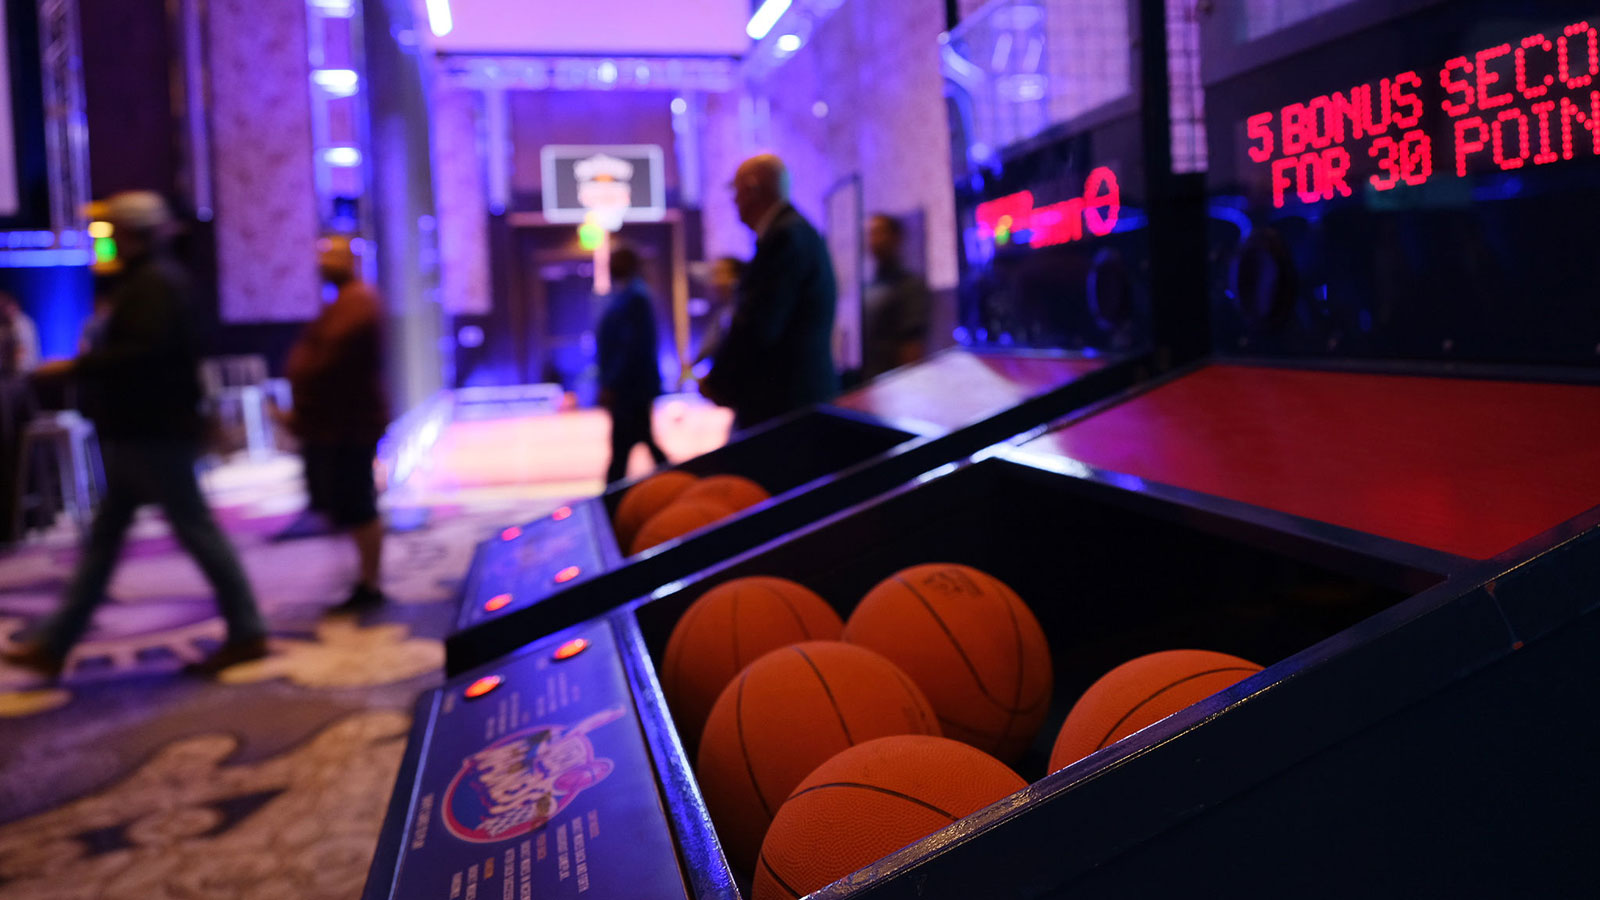 Unwind at Hoops & Hops by playing Super Shot or shooting on our regulation free throw court.